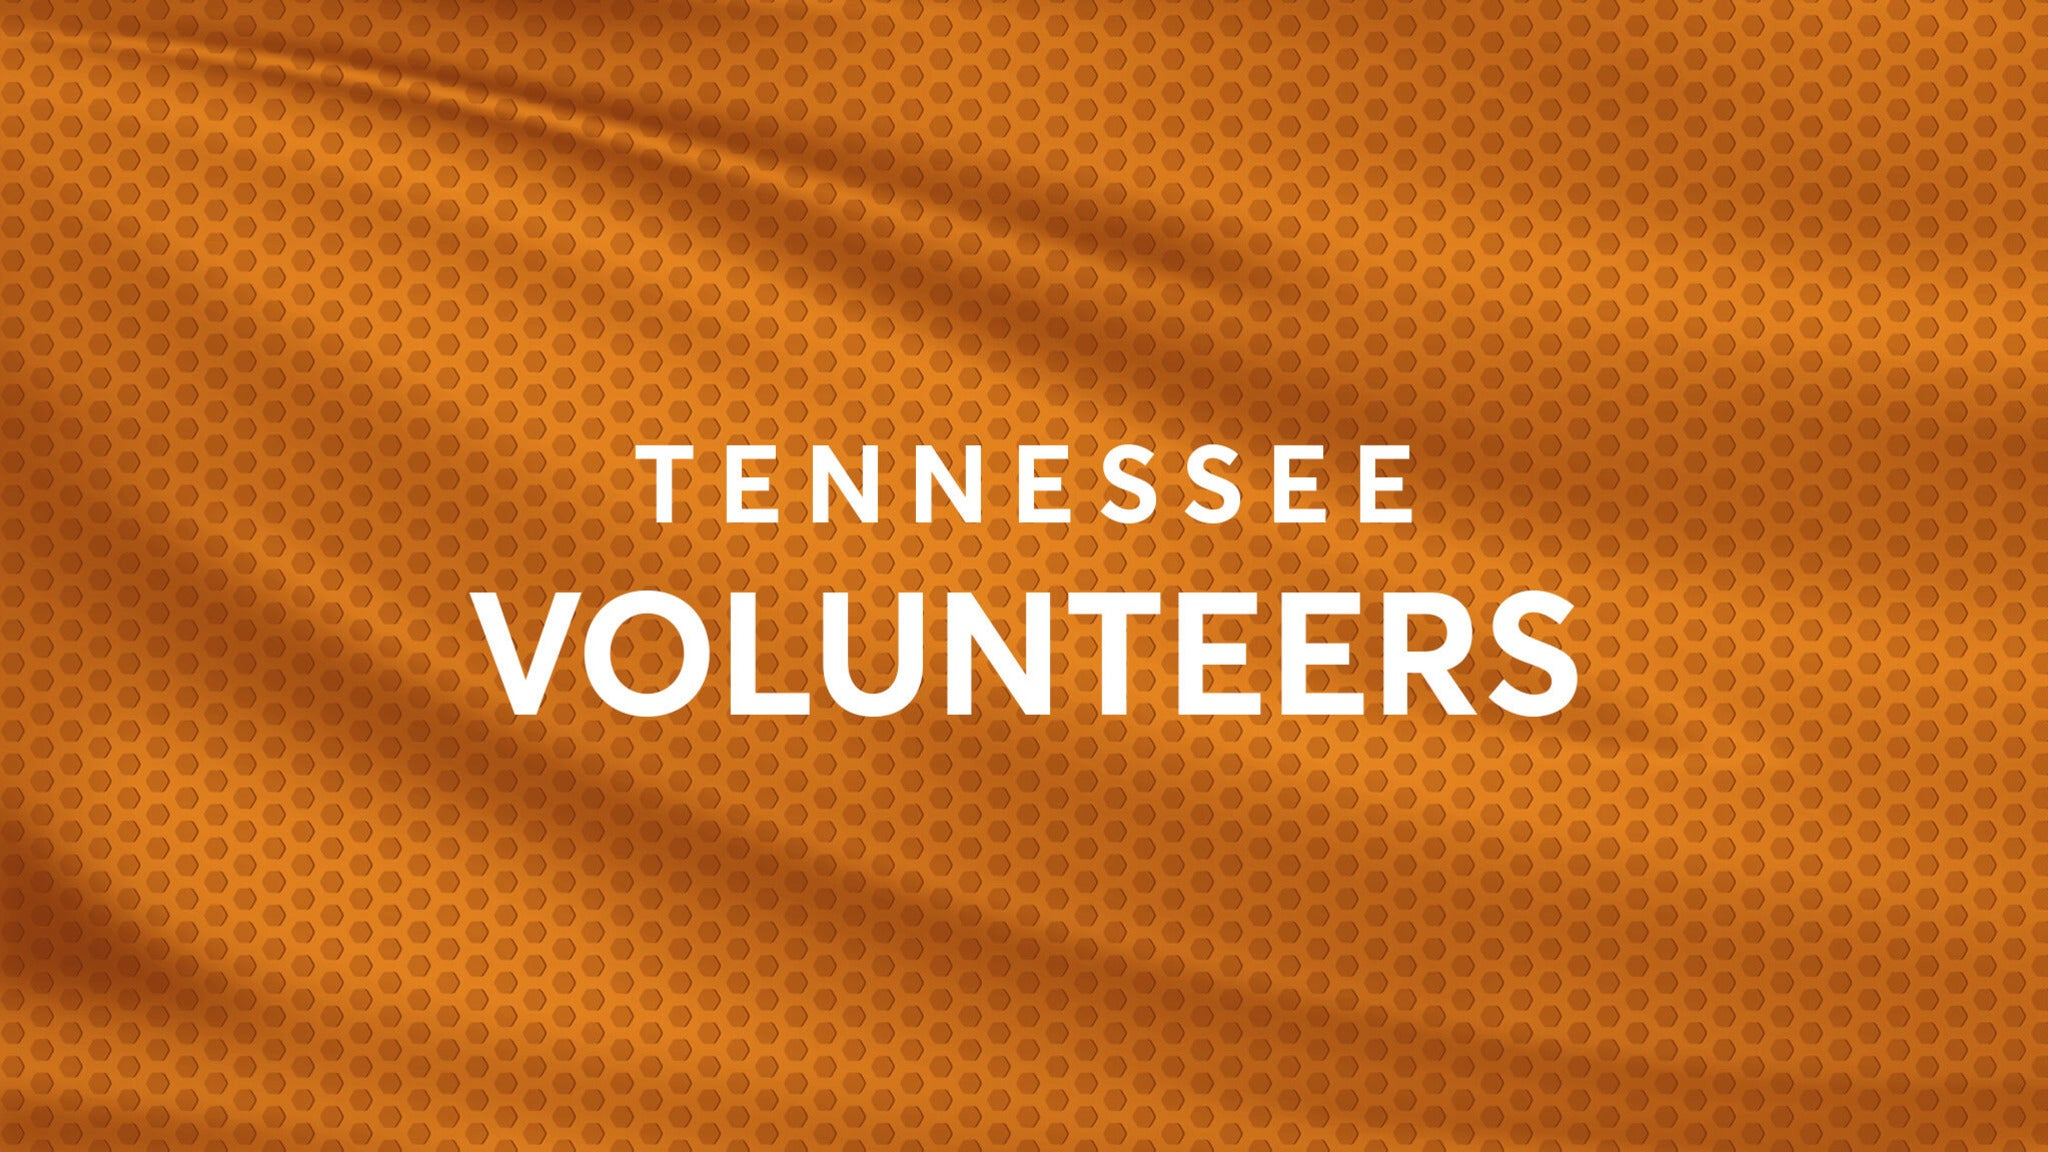 Tennessee Volunteers Mens Basketball